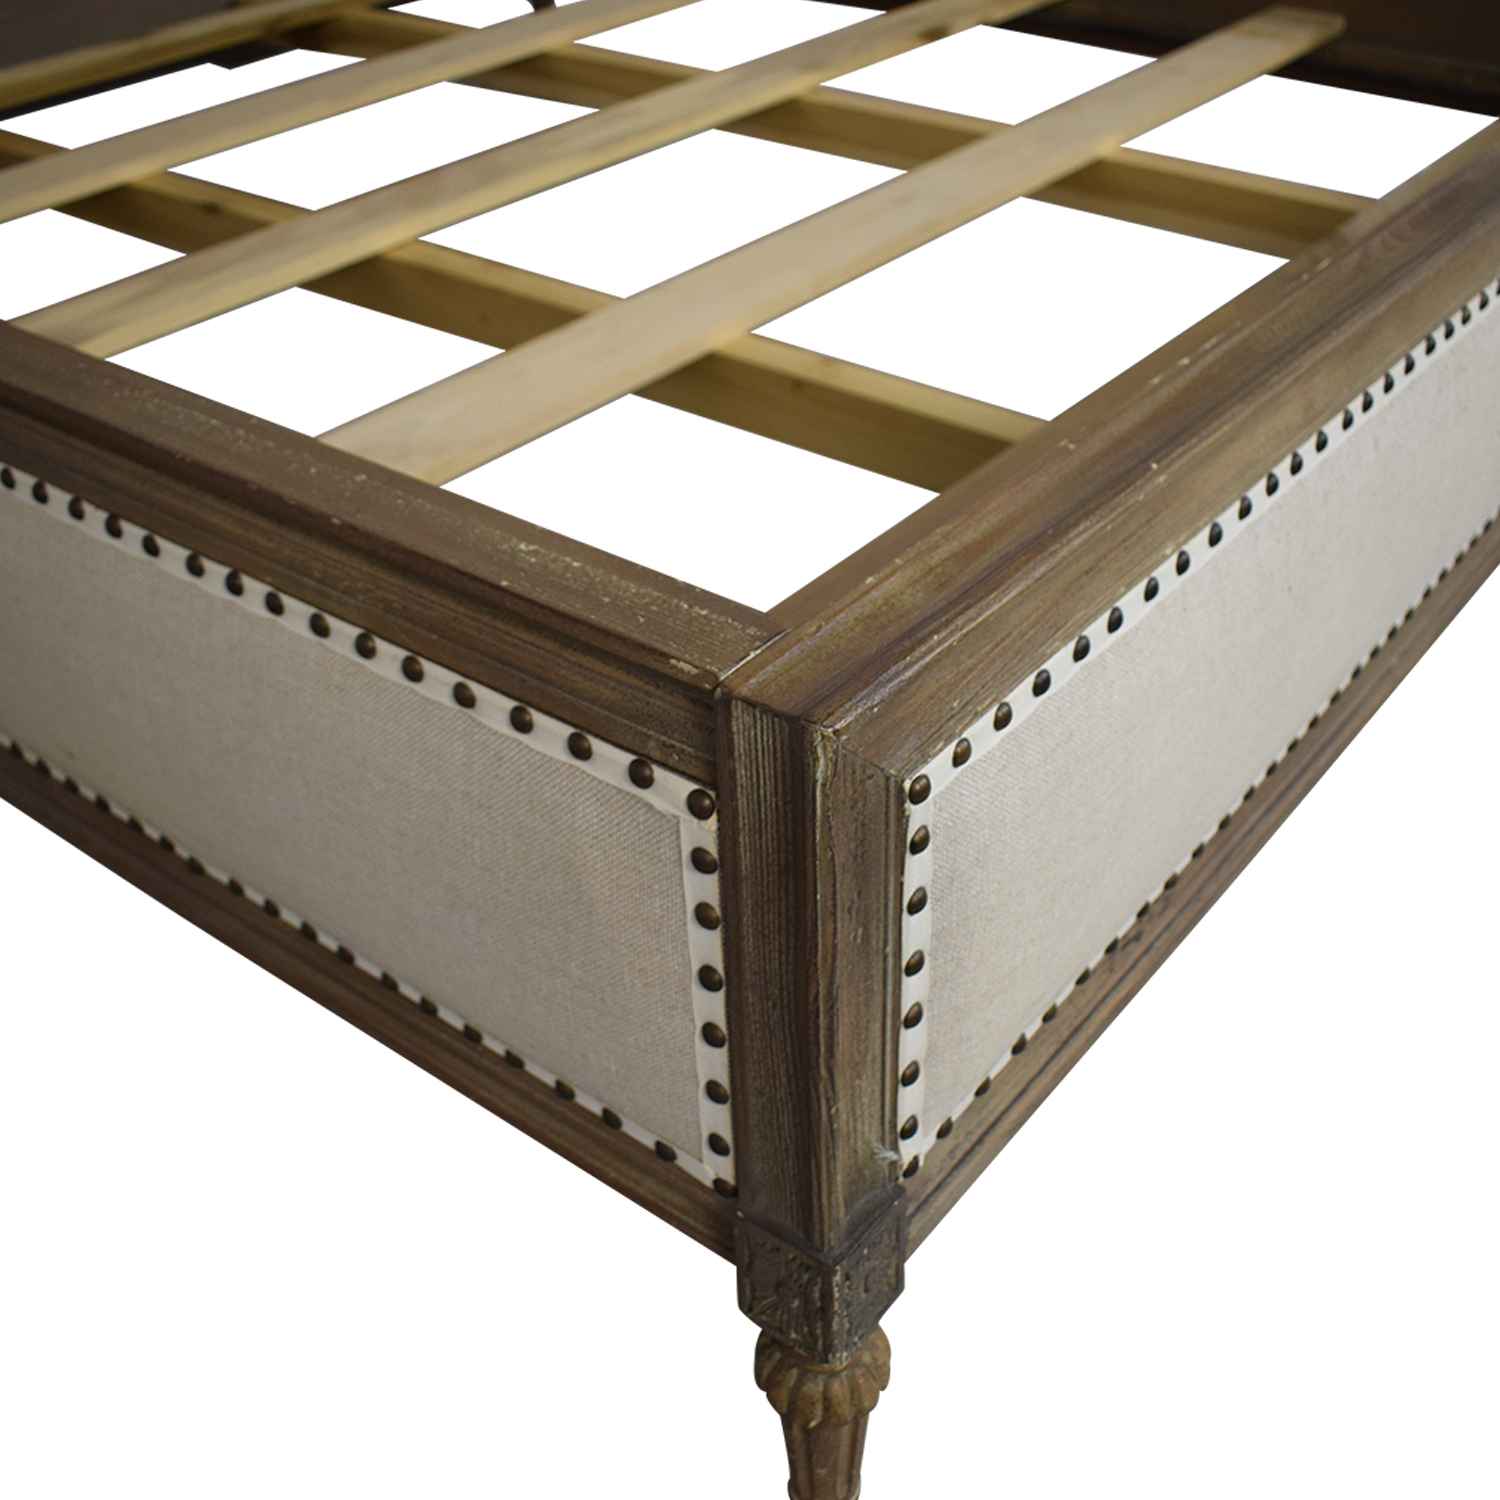 Restoration Hardware Restoration Hardware Maison Panel Fabric Bed Frame coupon